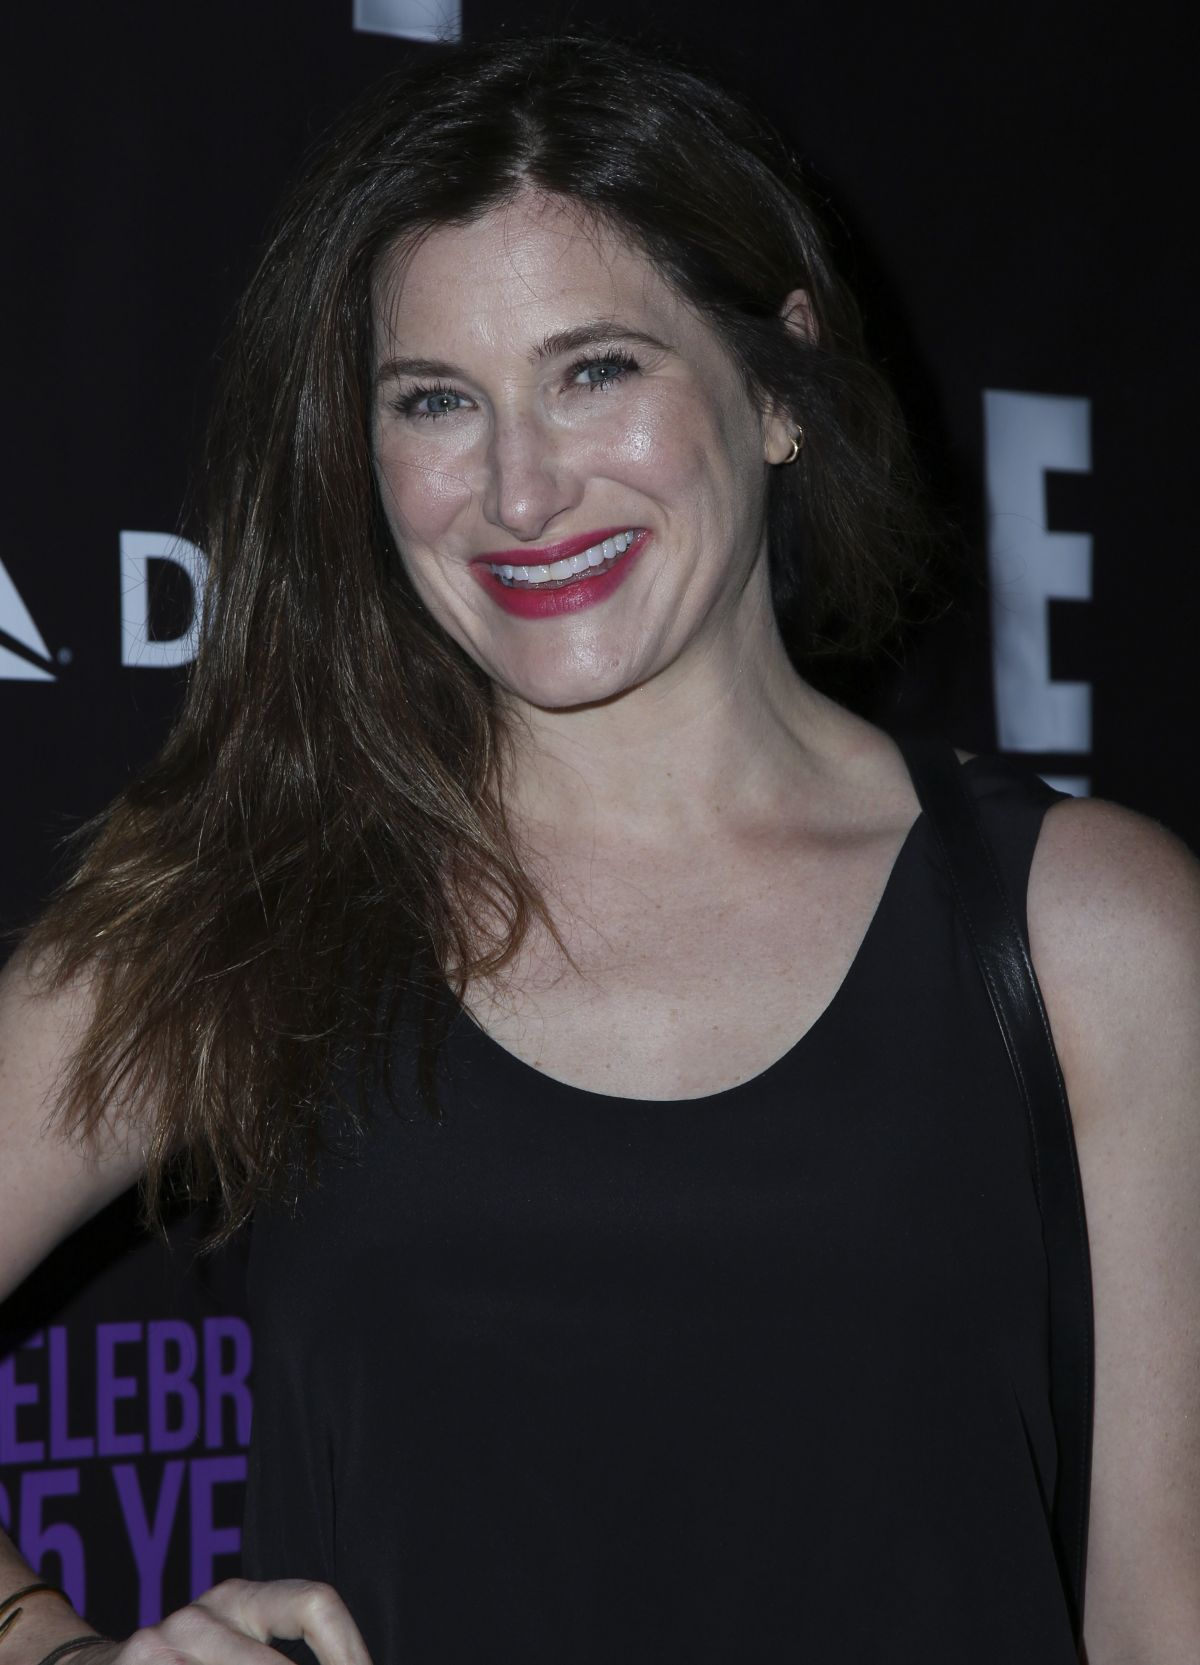 KATHRYN HAHN at Party! Celebrating 25 Years of P.S. Arts in Los Angeles 05/20/2016